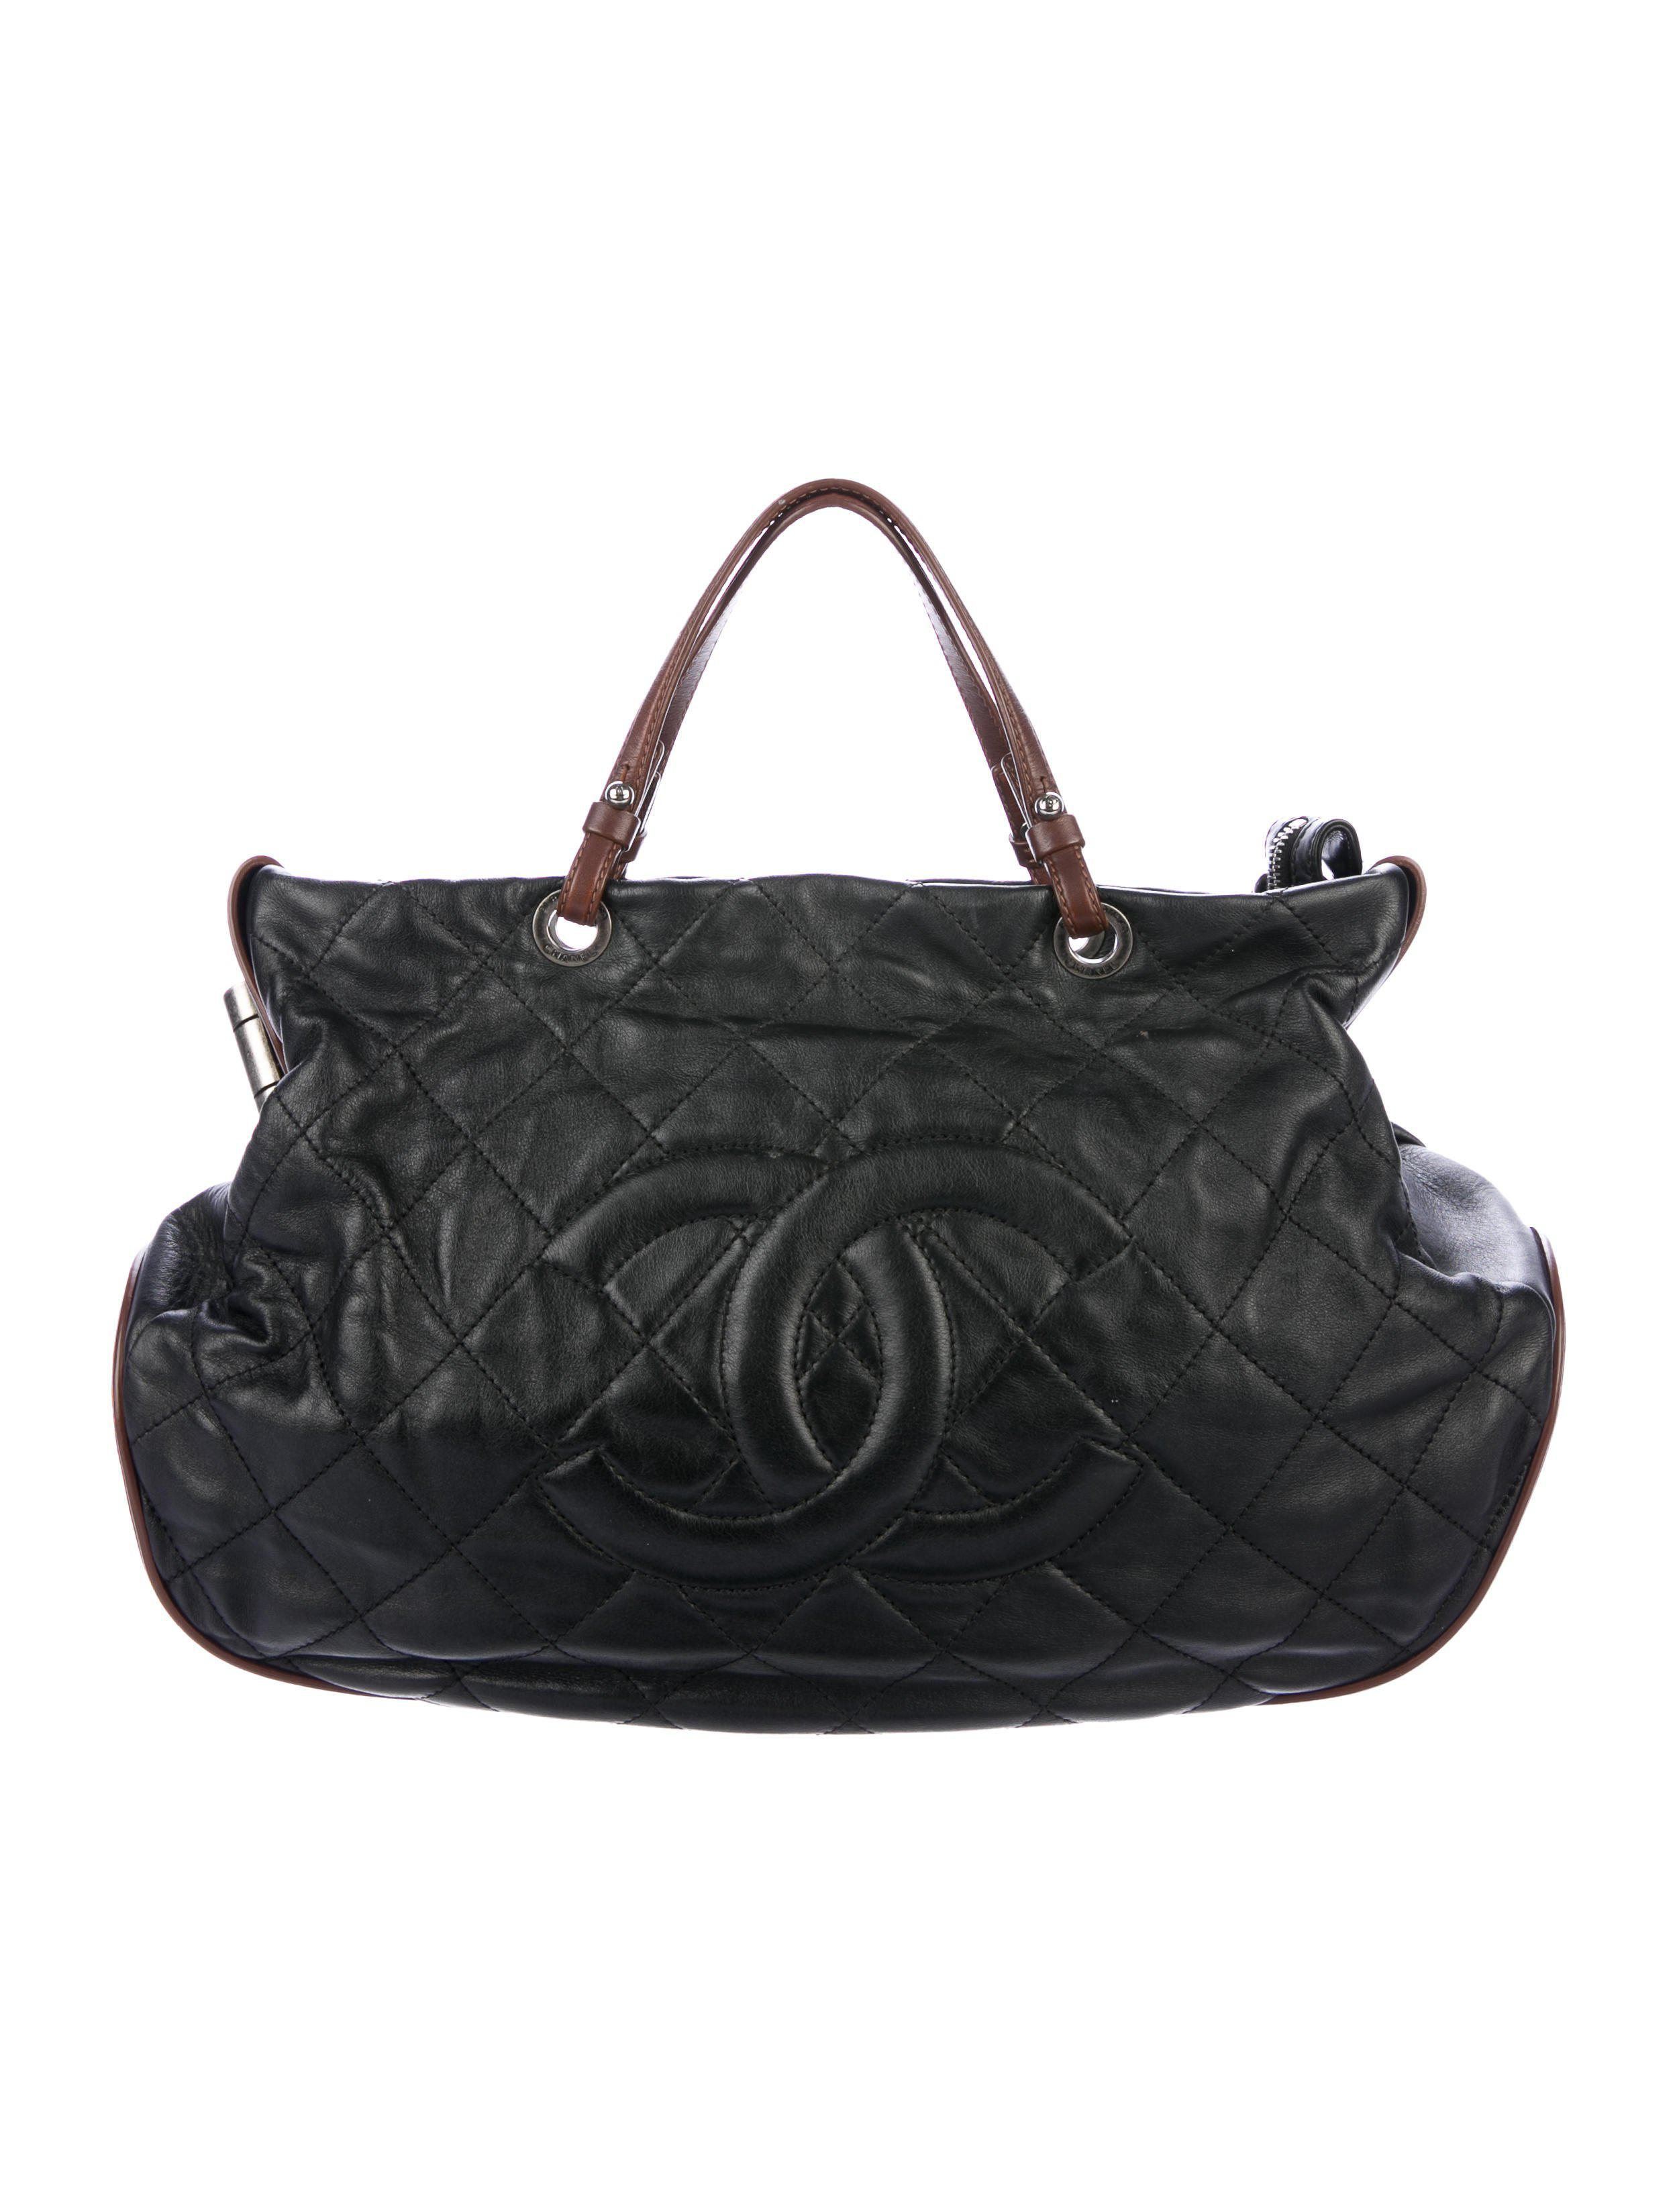 c4519d0bba13 Lyst - Chanel Quilted Country Chic Tote Black in Metallic